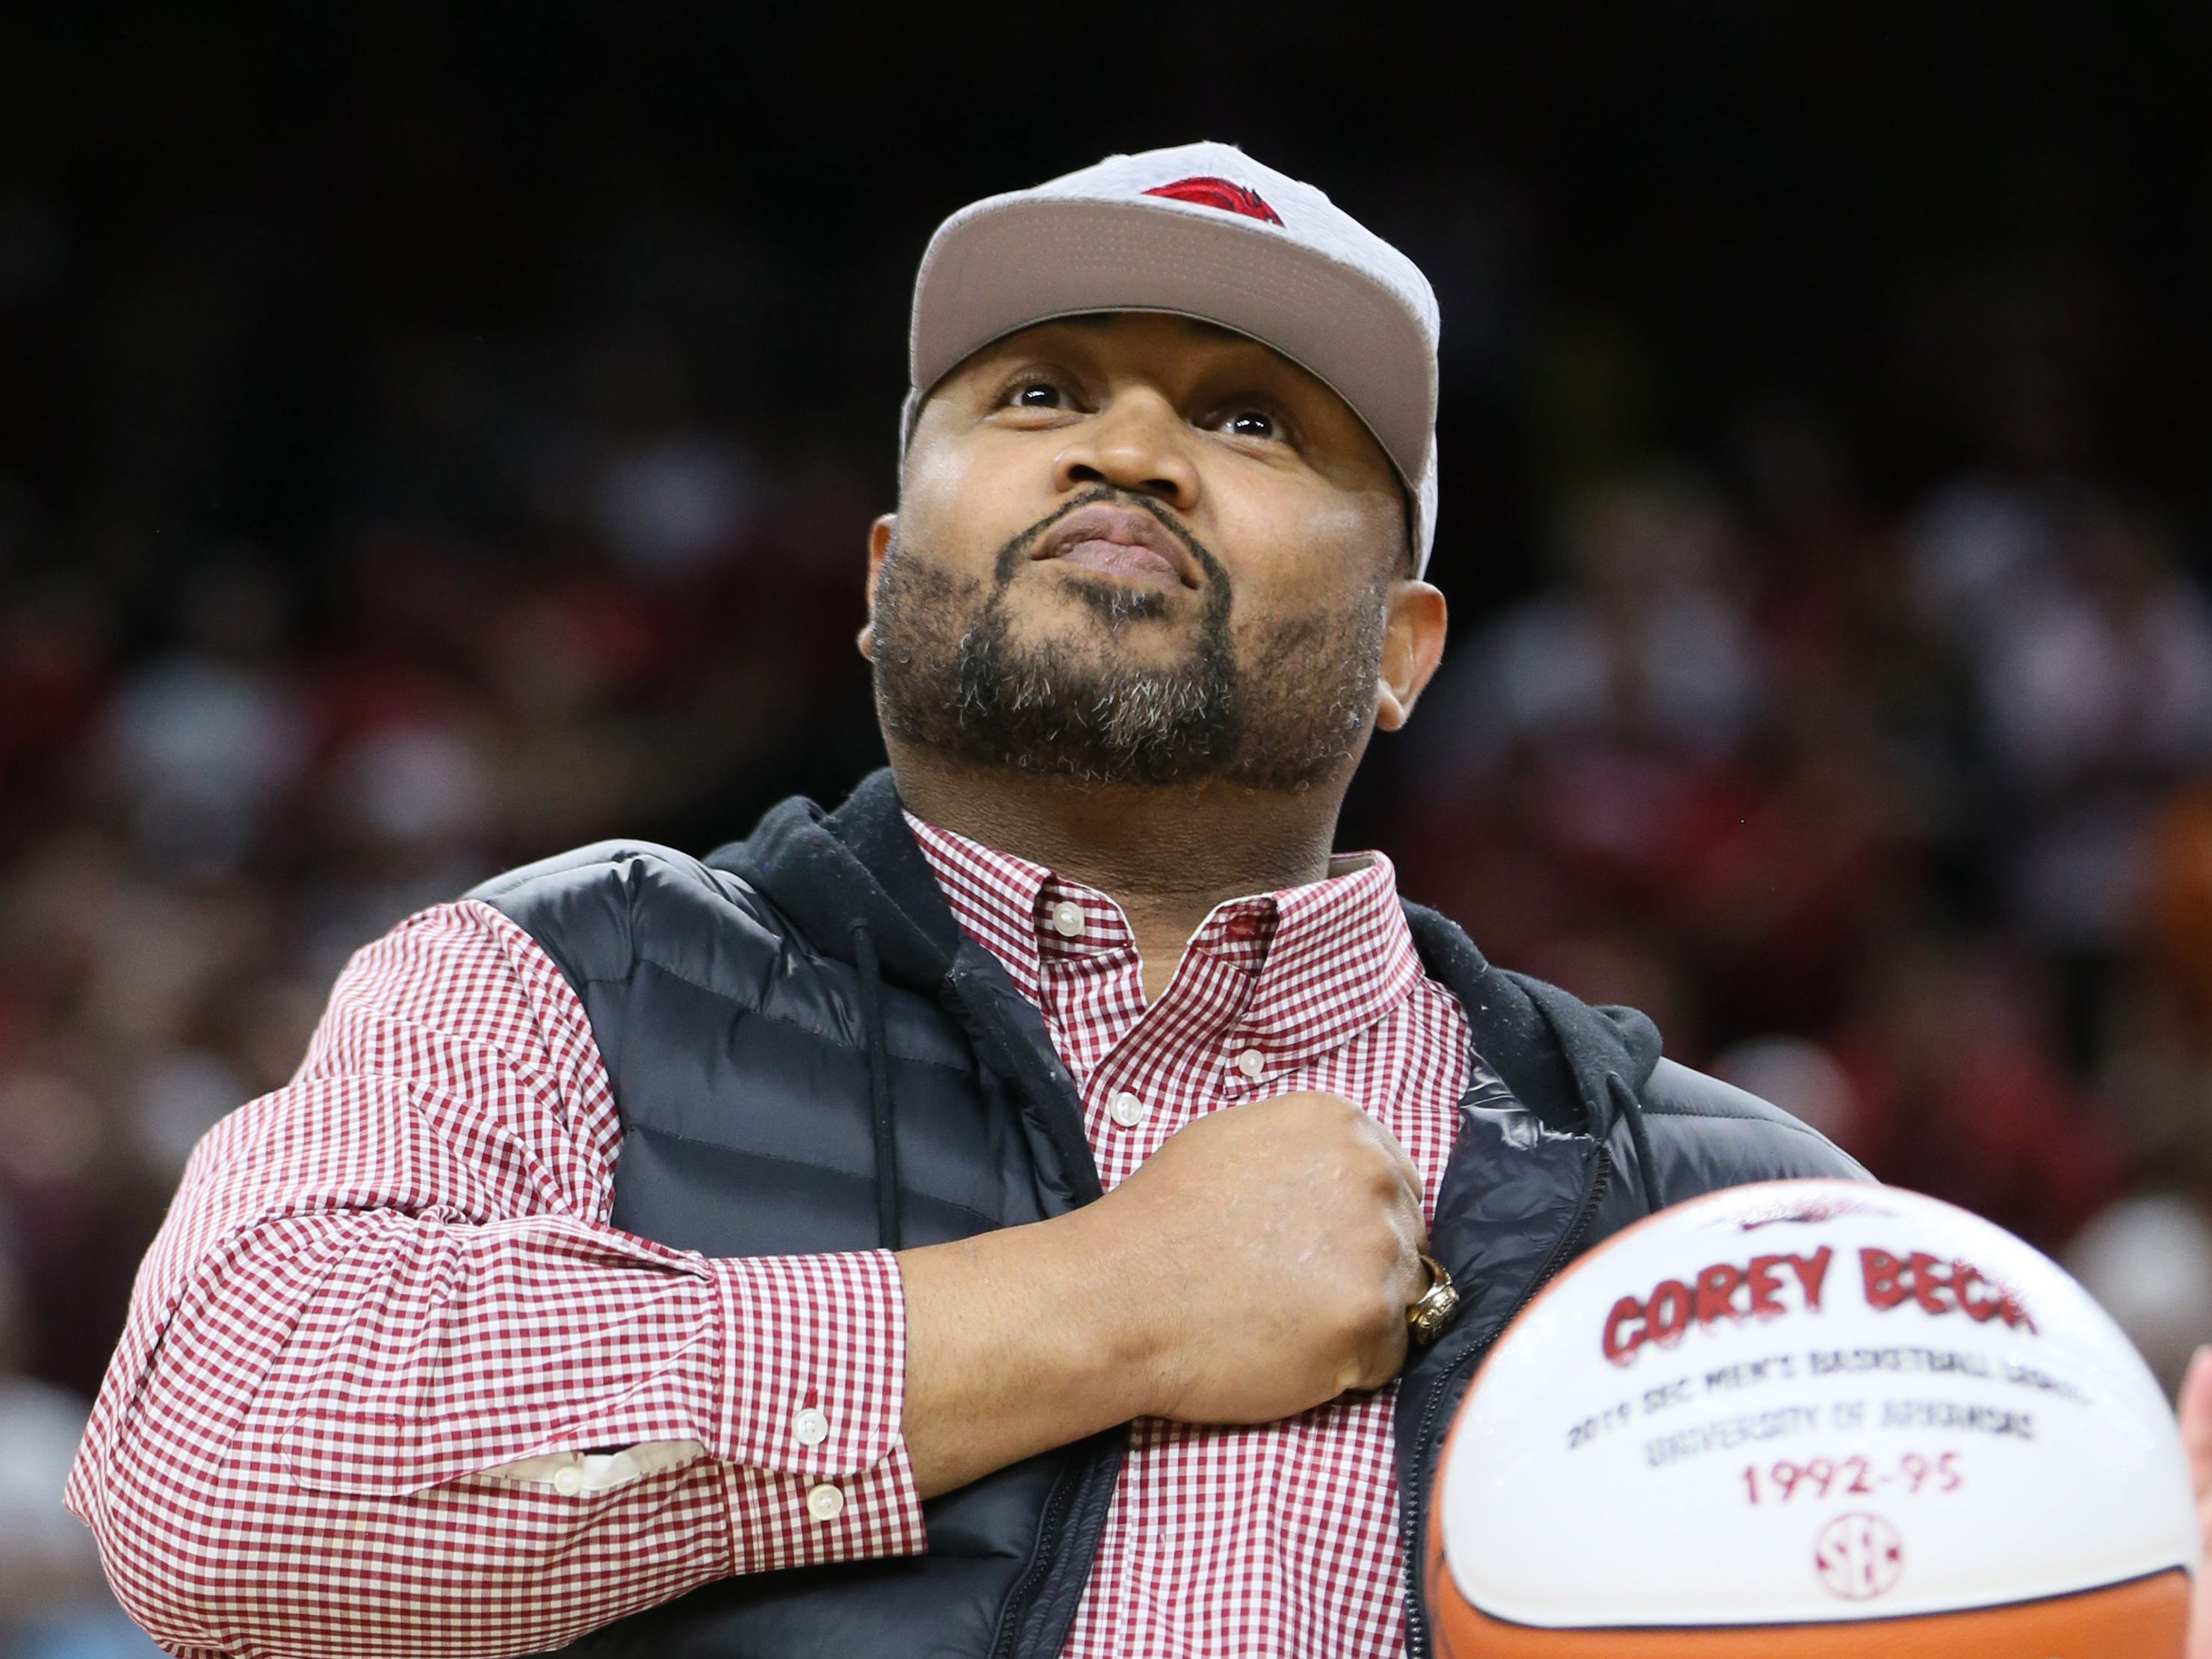 Mar 9, 2019; Fayetteville, AR, USA; Former Arkansas Razorbacks and NBA player Corey Beck is honored during the first half against the Alabama Crimson Tide at Bud Walton Arena. Mandatory Credit: Nelson Chenault-USA TODAY Sports